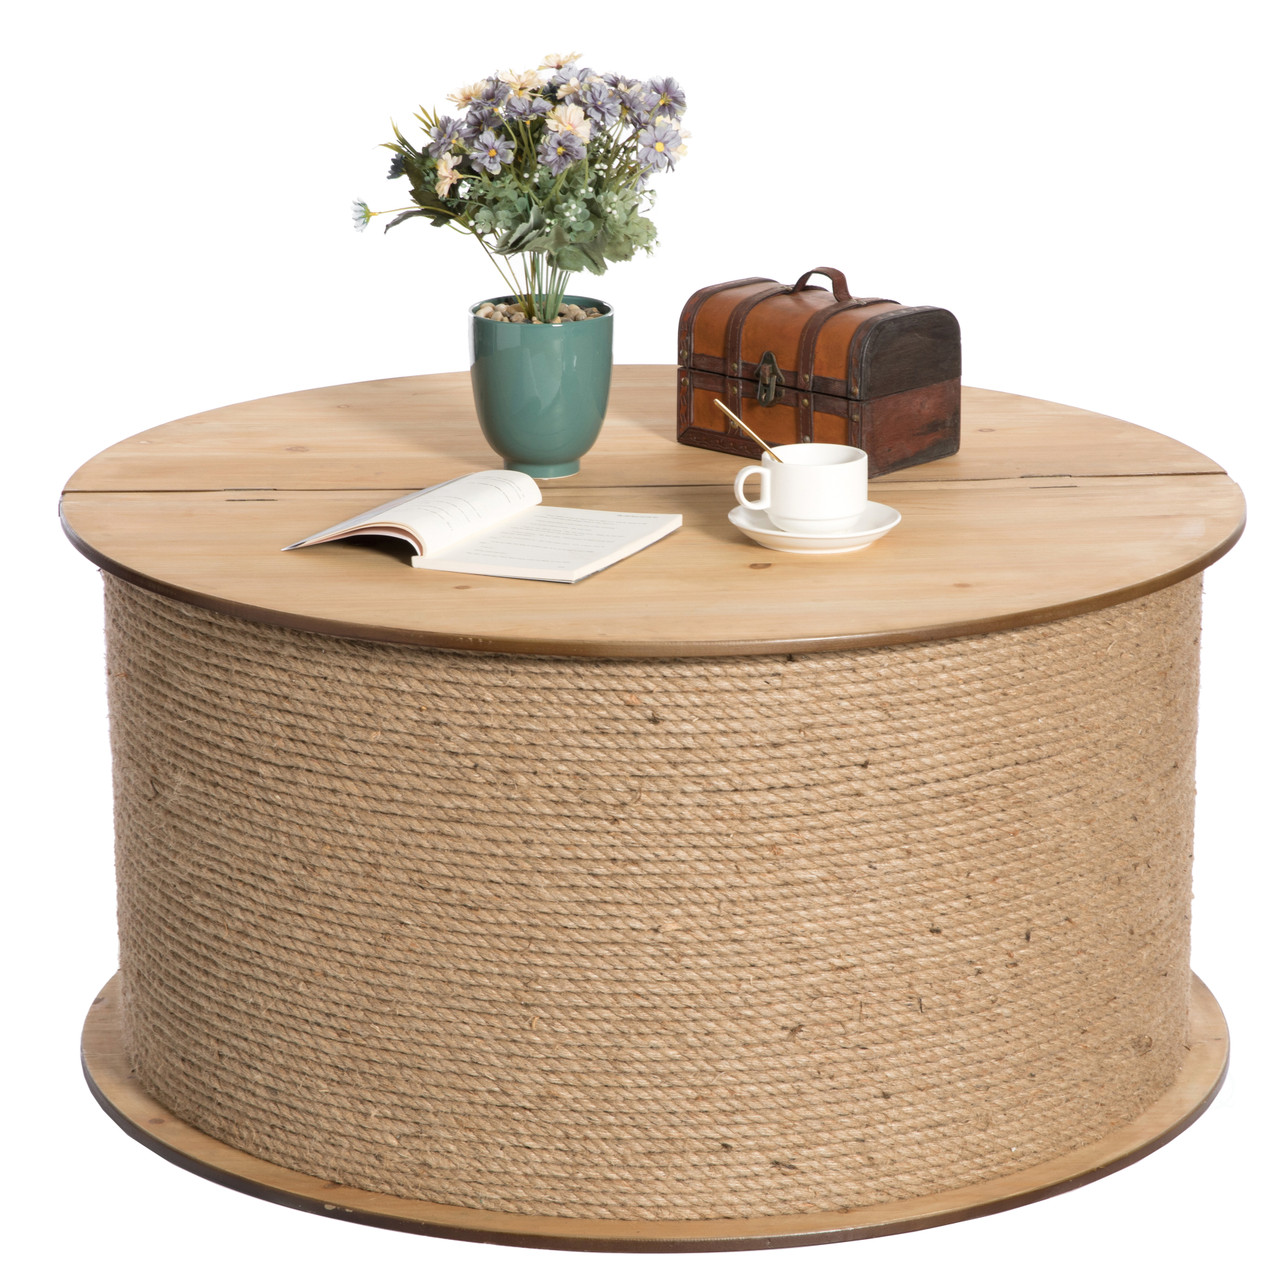 Decorative Round Spool Shaped Wooden Coffee Table With Rope Lift Top Storage Vintiquewise